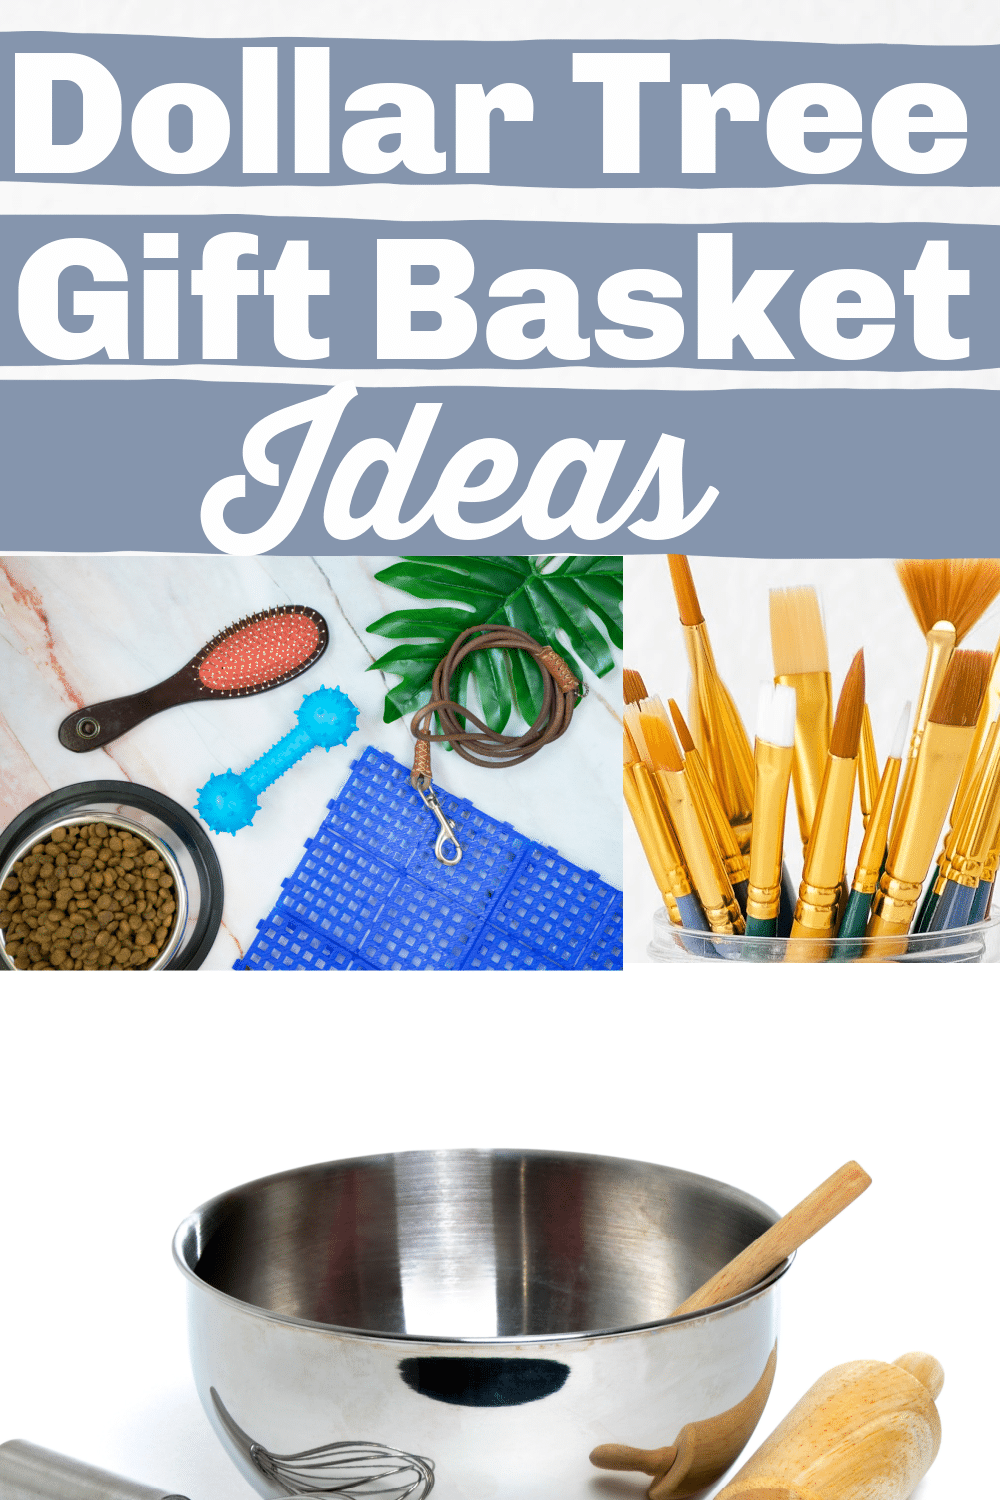 Dollar Tree Gift Basket Ideas for less than $10 via @clarkscondensed